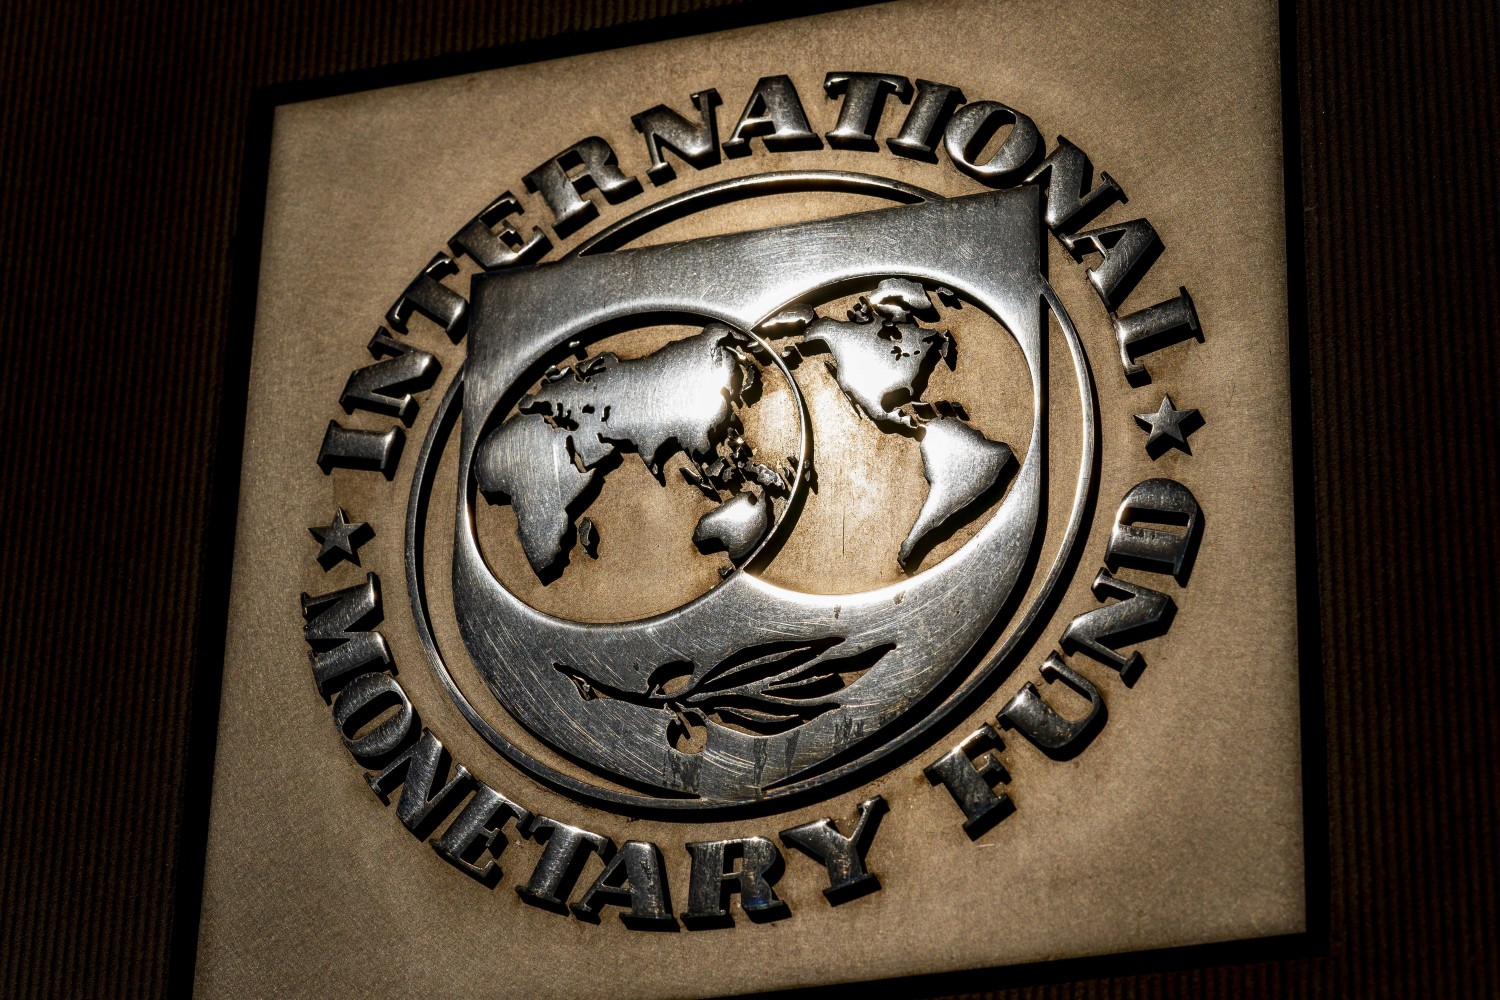 FILE - The logo of the International Monetary Fund is visible on their building, Monday, April 5, 2021, in Washington. Finance officials of the world's major economies on Wednesday, April 7, 2021 agreed on a proposal to boost the resources of the International Monetary Fund by $650 billion as a way to provide more support to vulnerable countries struggling to deal with a global pandemic. (AP Photo/Andrew Harnik)